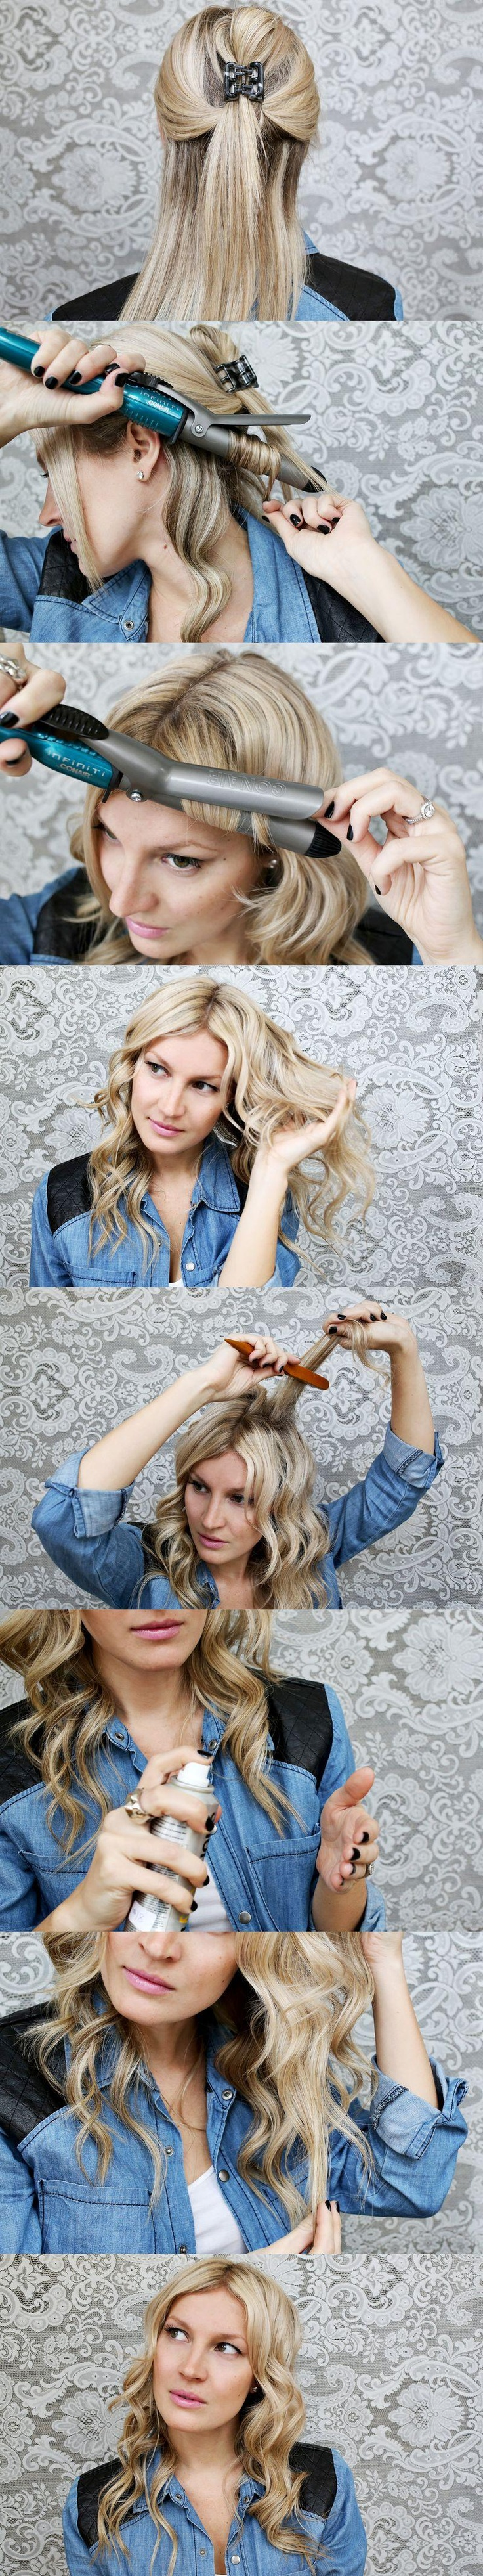 How to perfectly curl your hair! Don't forget a heat protector!: Diy Hairstyles, Curling Technique, Make Up, Idea, Hair Tutorials, Hair Styles, Makeup, Wave Hair